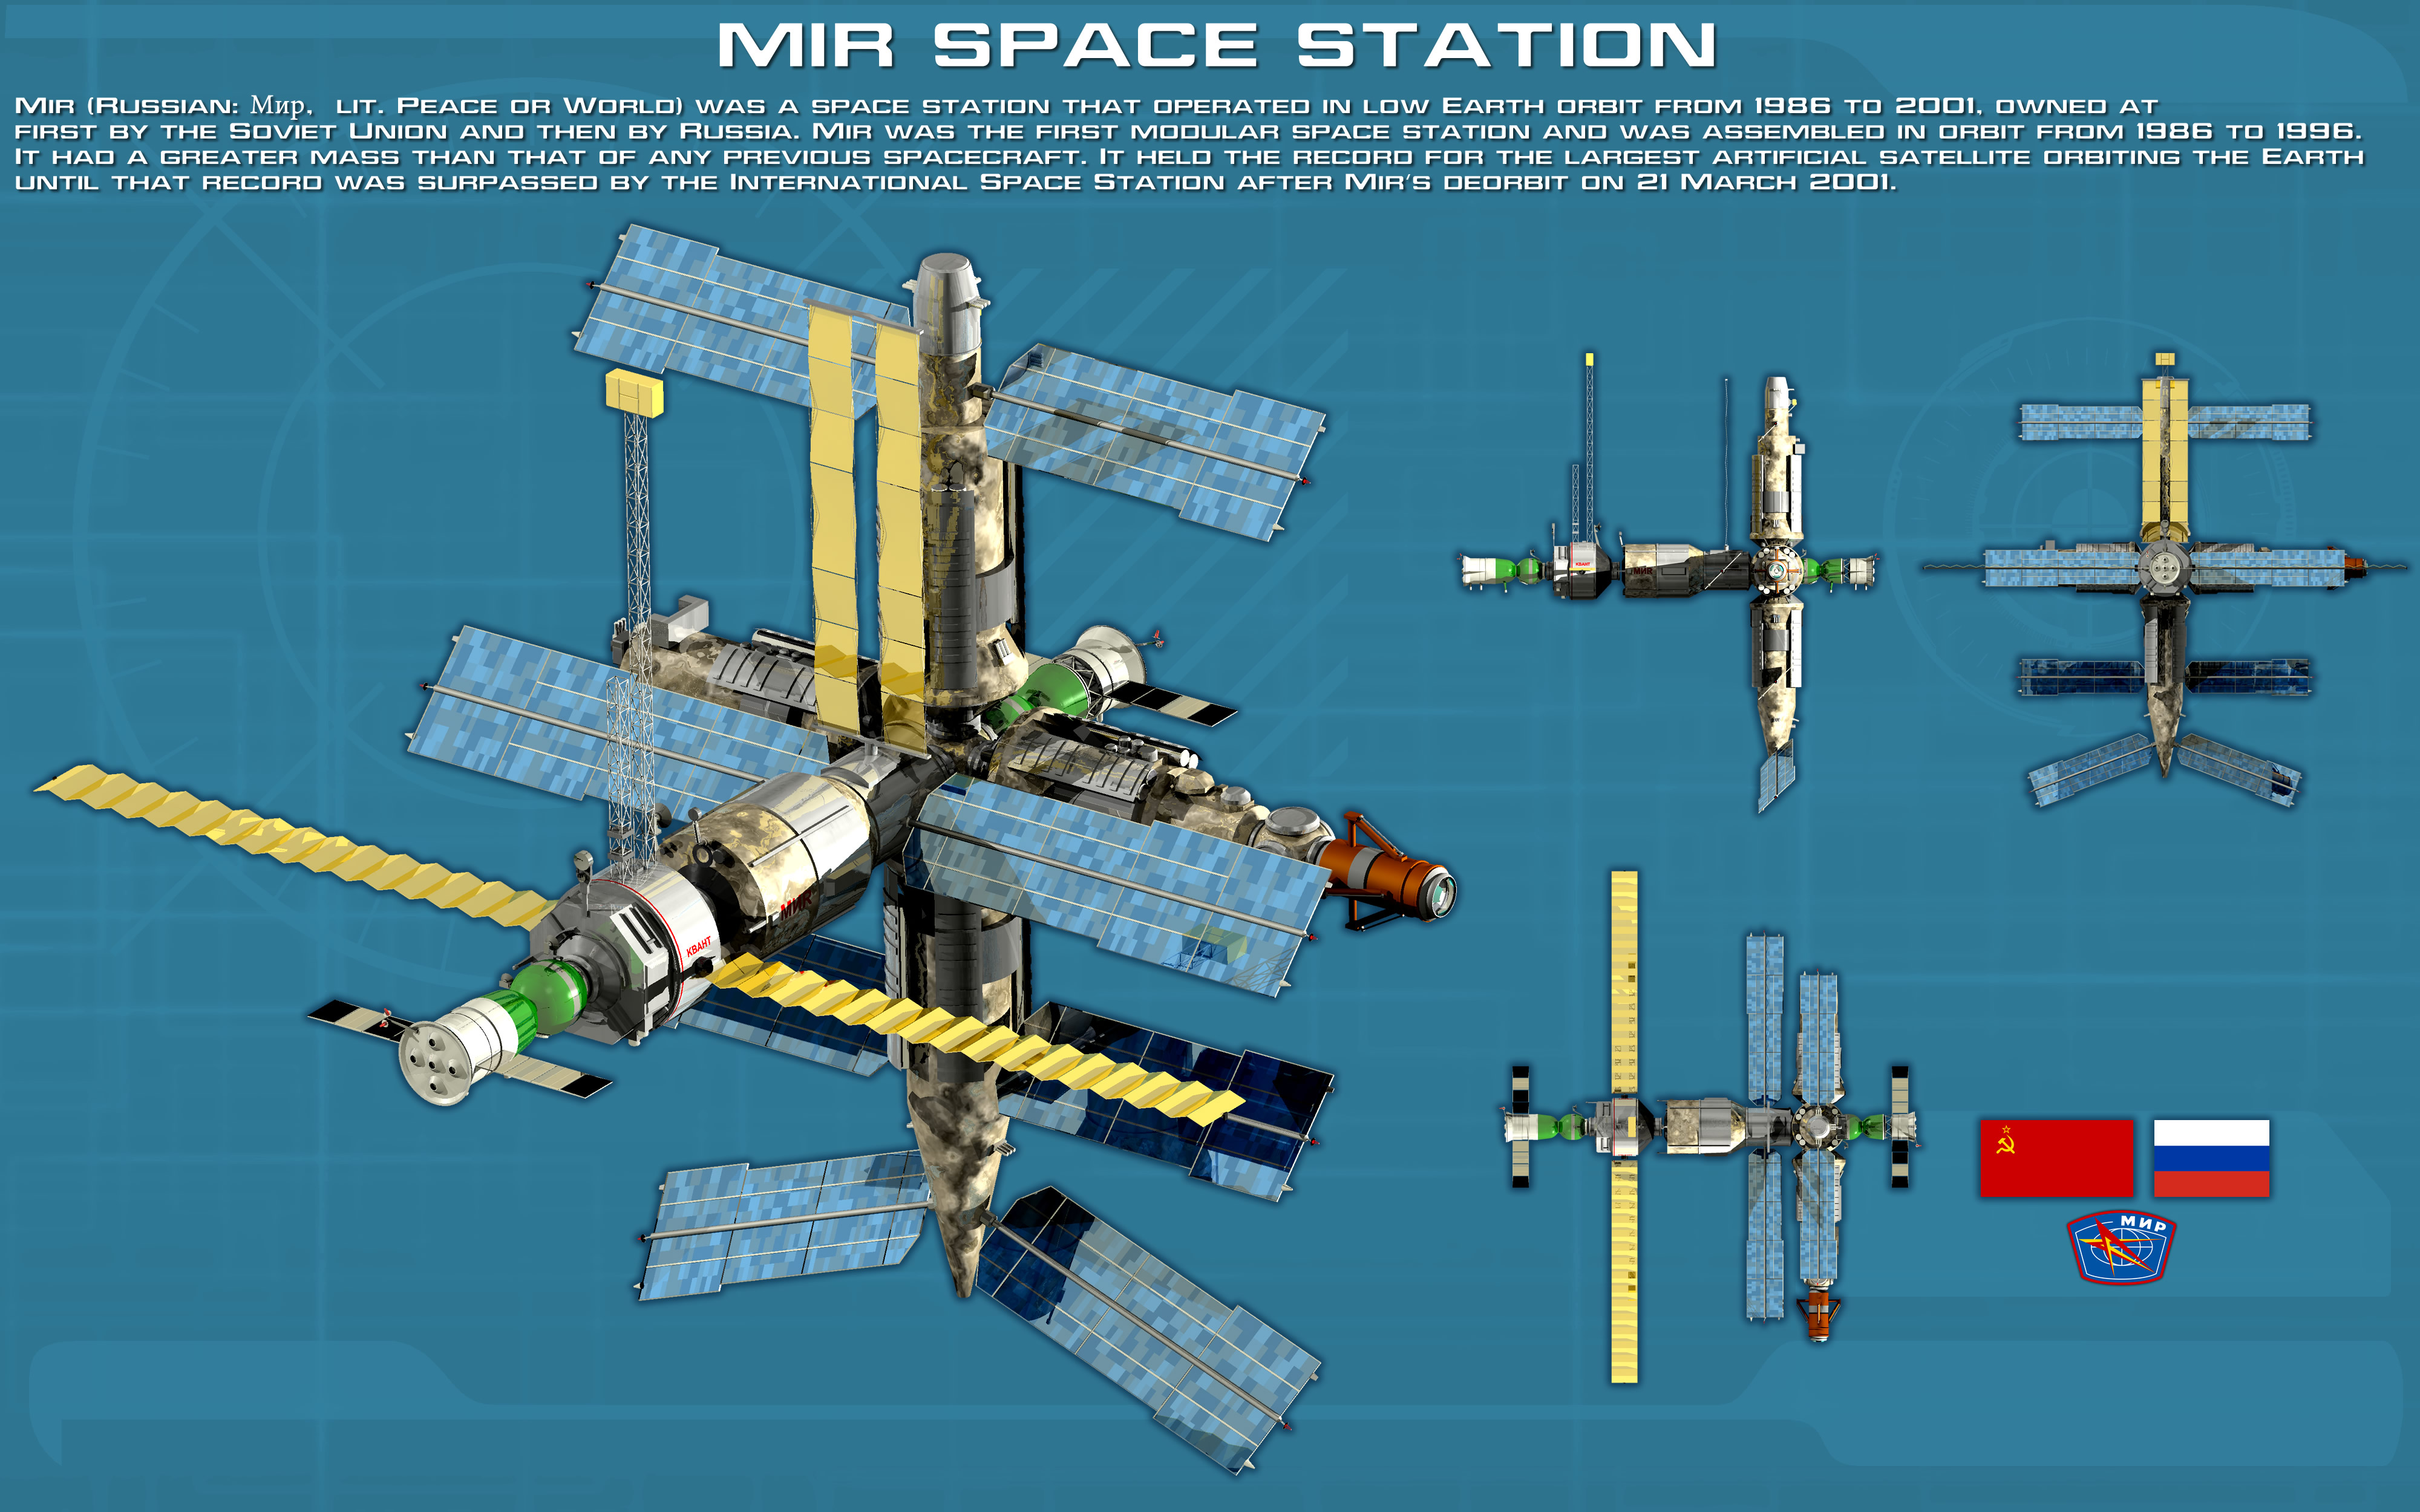 ussr launches mir space station - photo #28